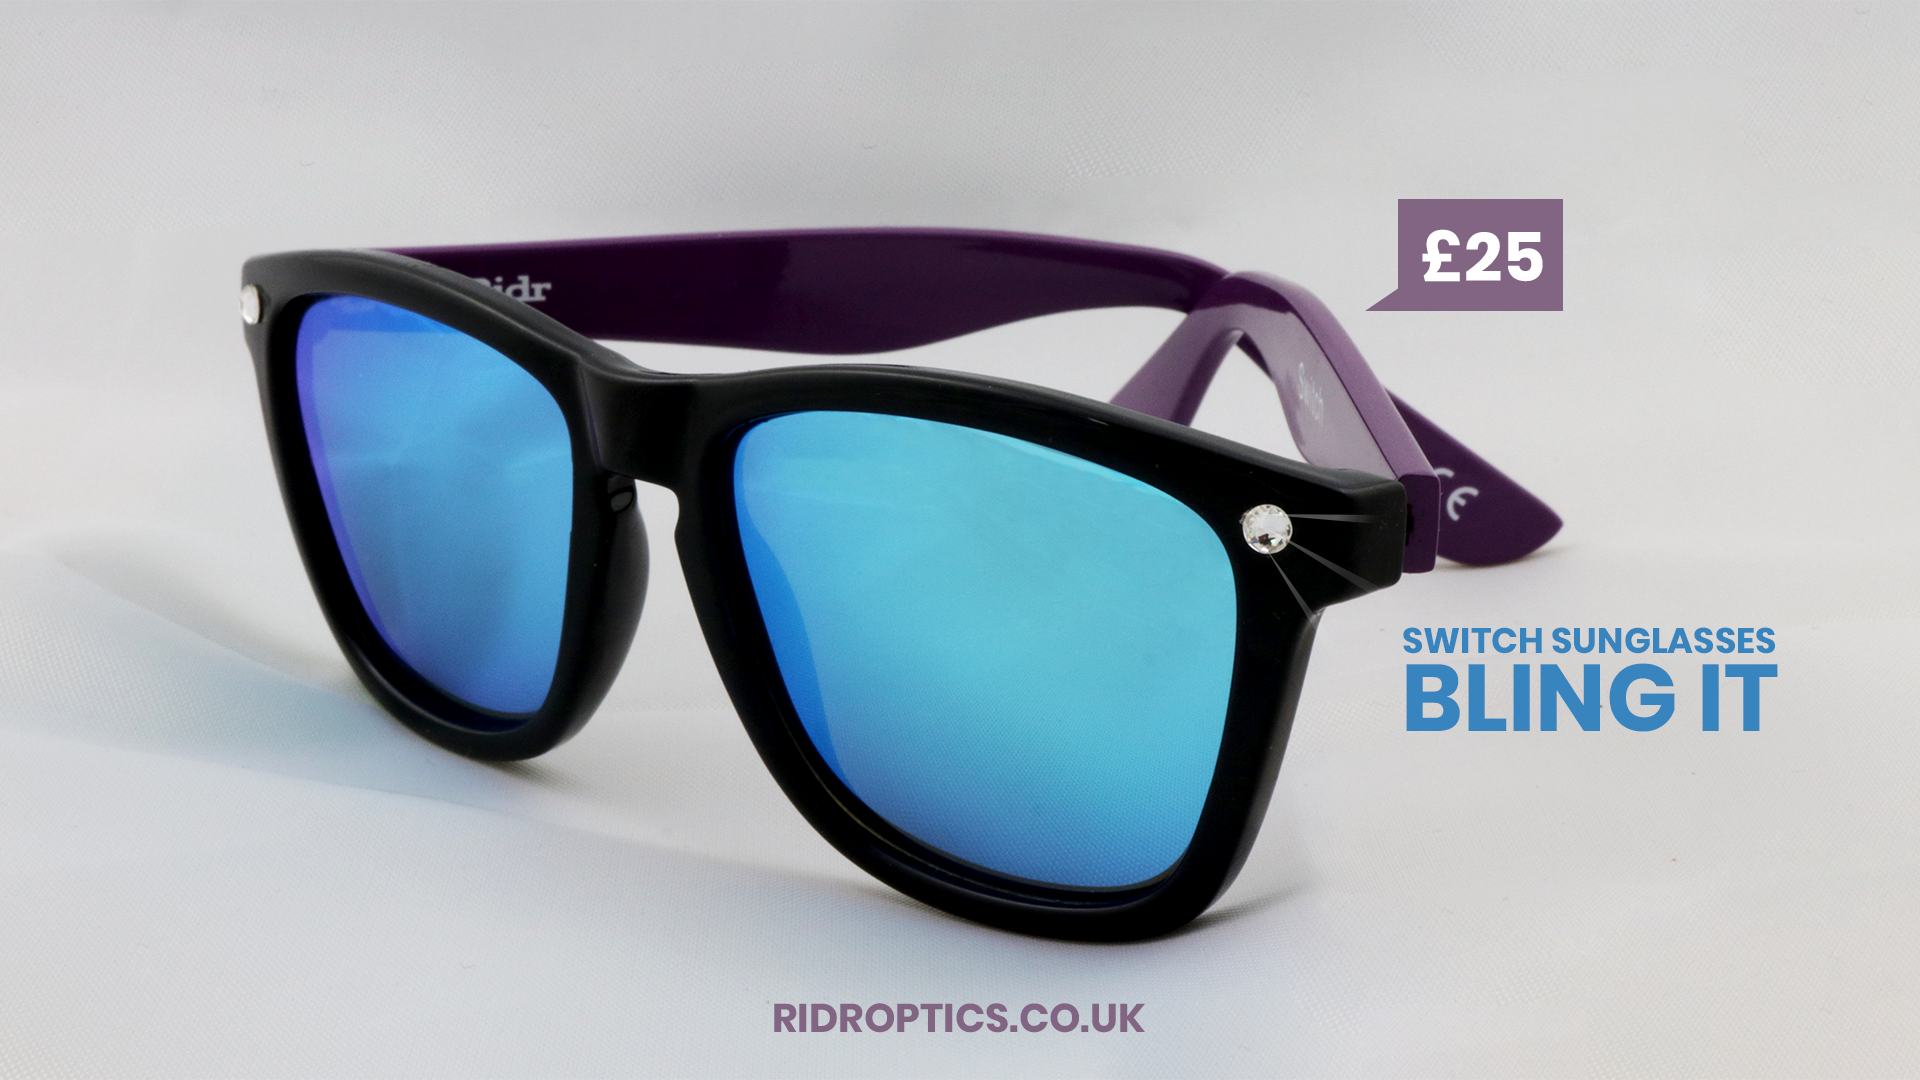 015794cd97 Ridr Switch Sunglasses are now available with optional Swarovski Crystal  Bling. Fresh! Order yours